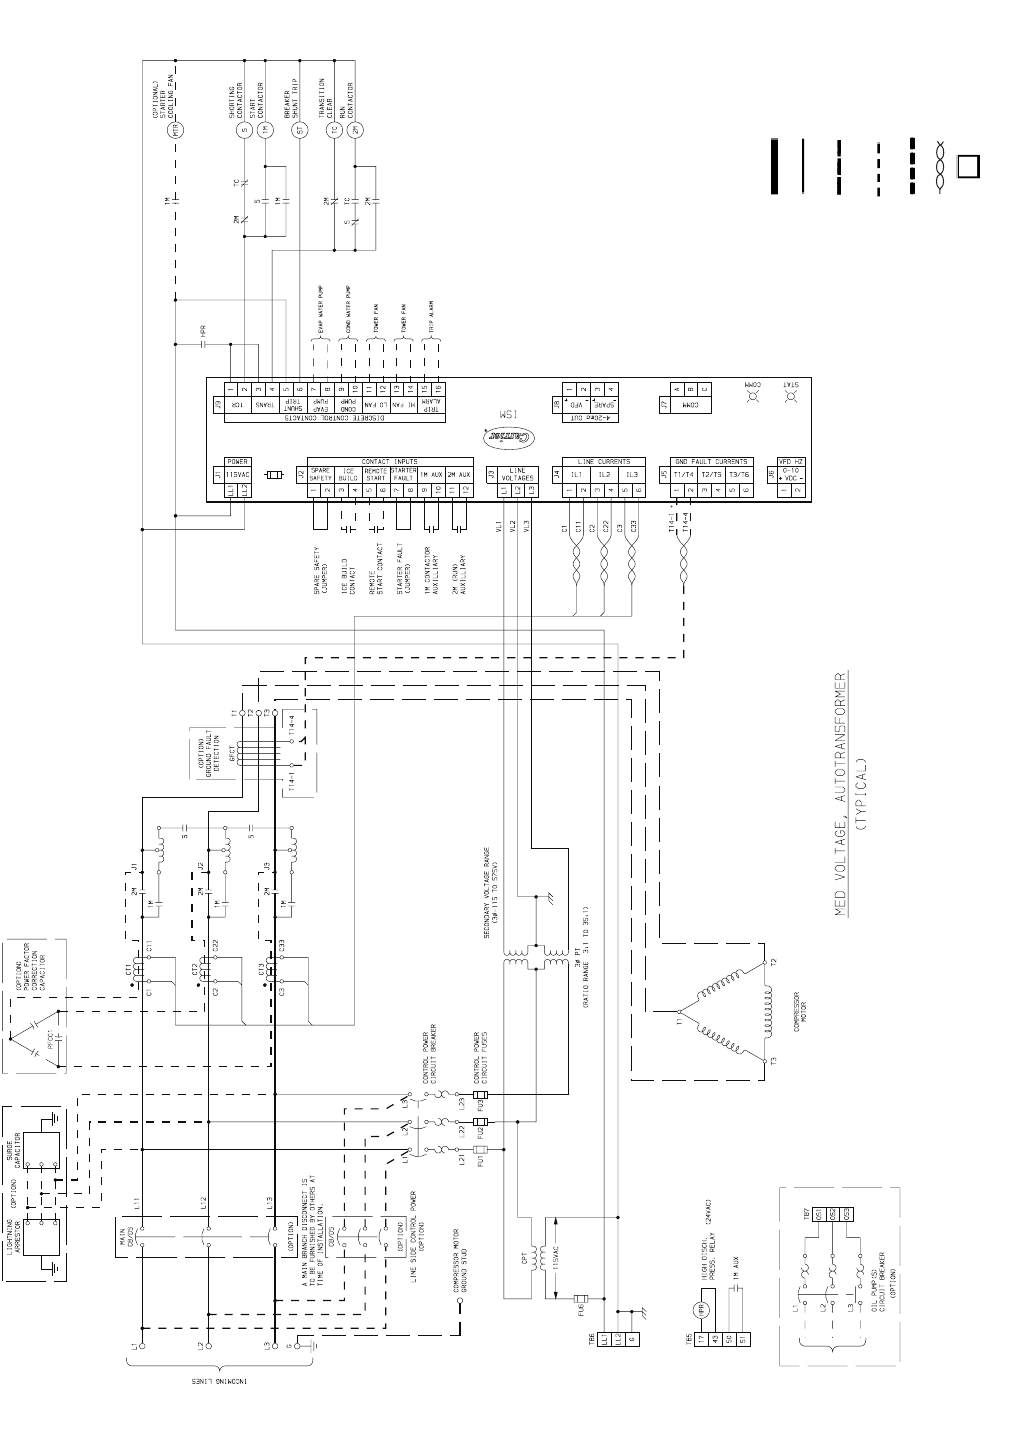 Carrier 19xr xrv fig 56 typical autotransformer starter wiring 56 typical autotransformer starter wiring schematic medium voltage asfbconference2016 Gallery